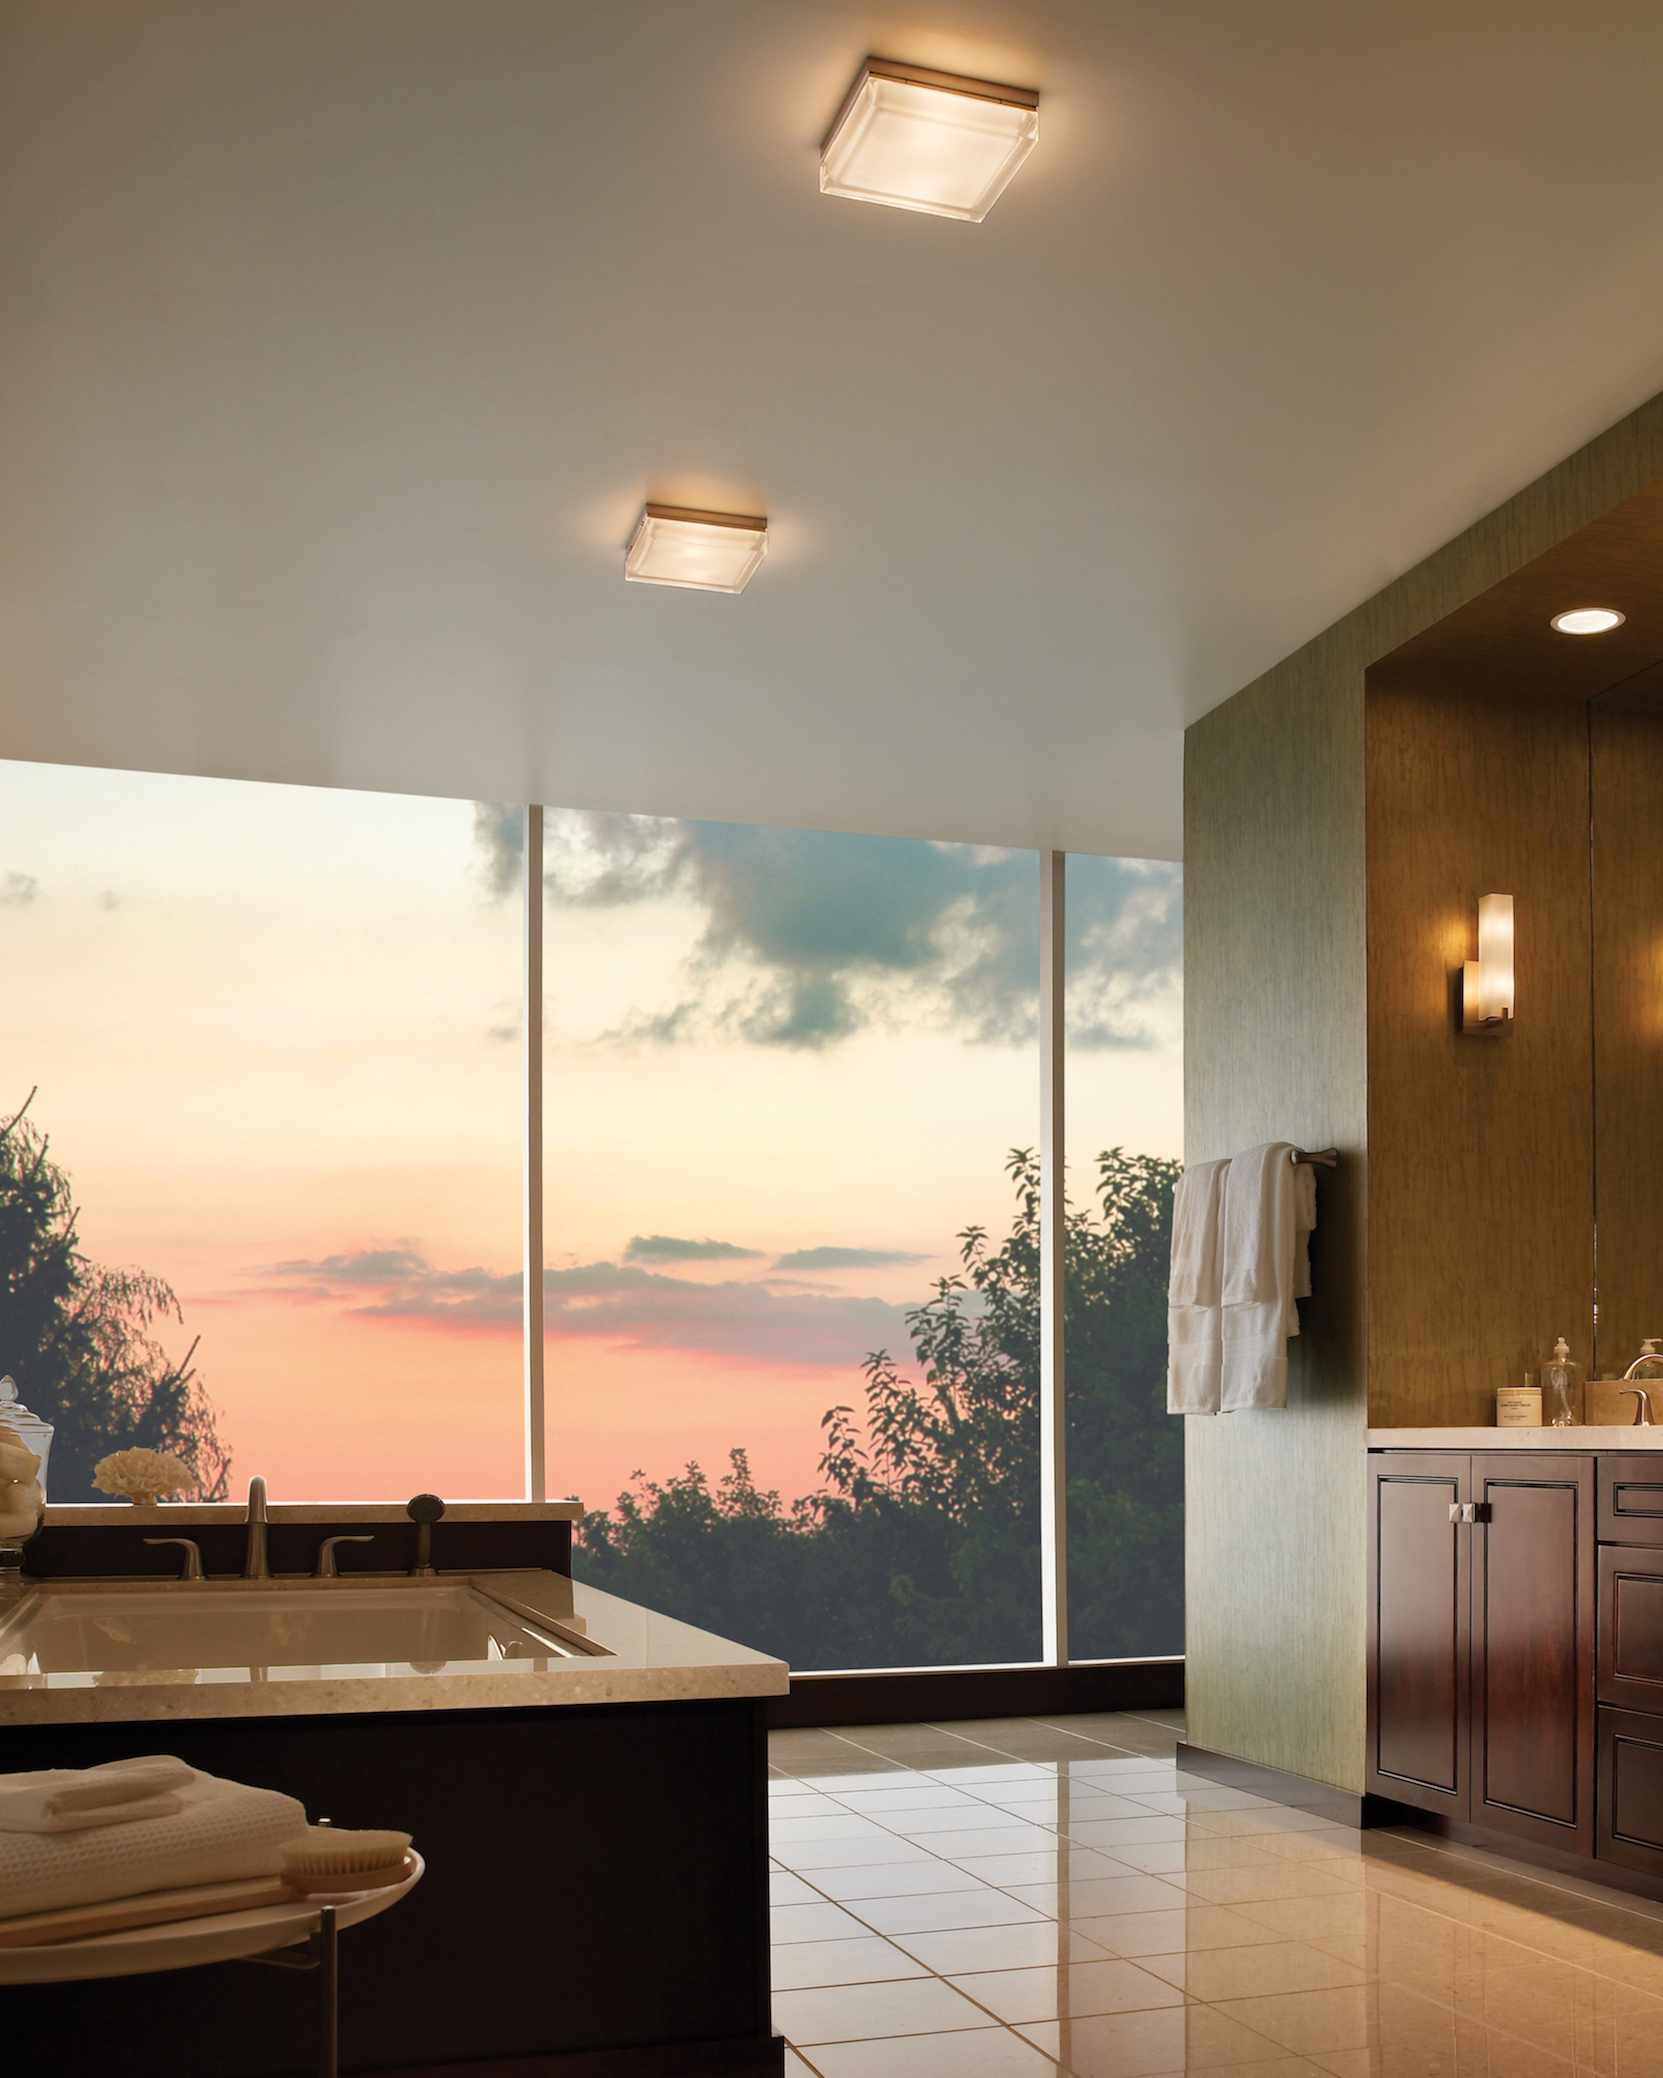 Bathroom Lighting Code Requirements bathroom lighting buying guide | design necessities lighting